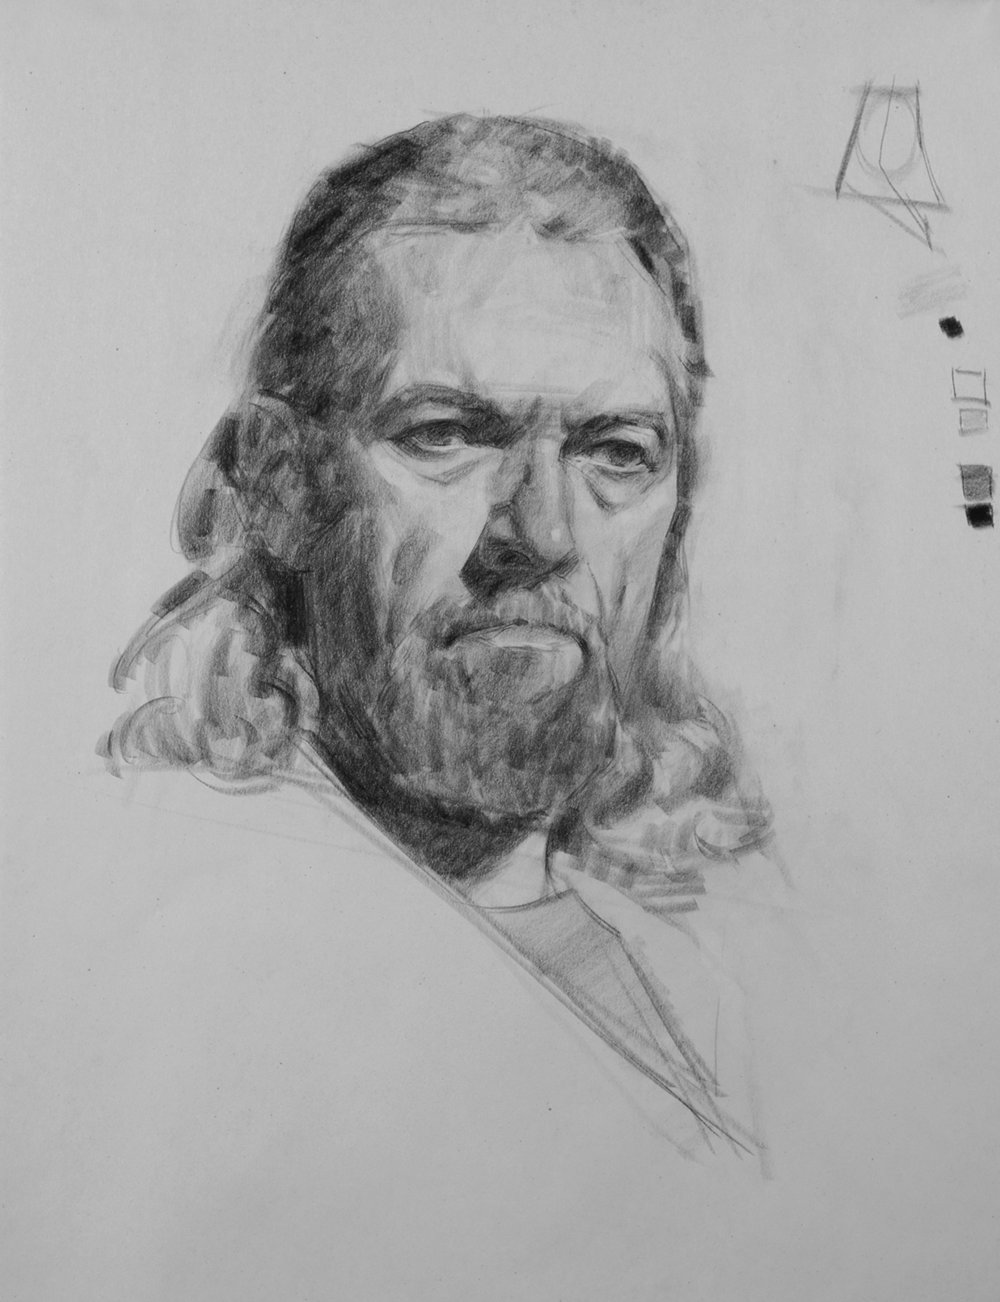 Charcoal Class demo by Mark Schwartz